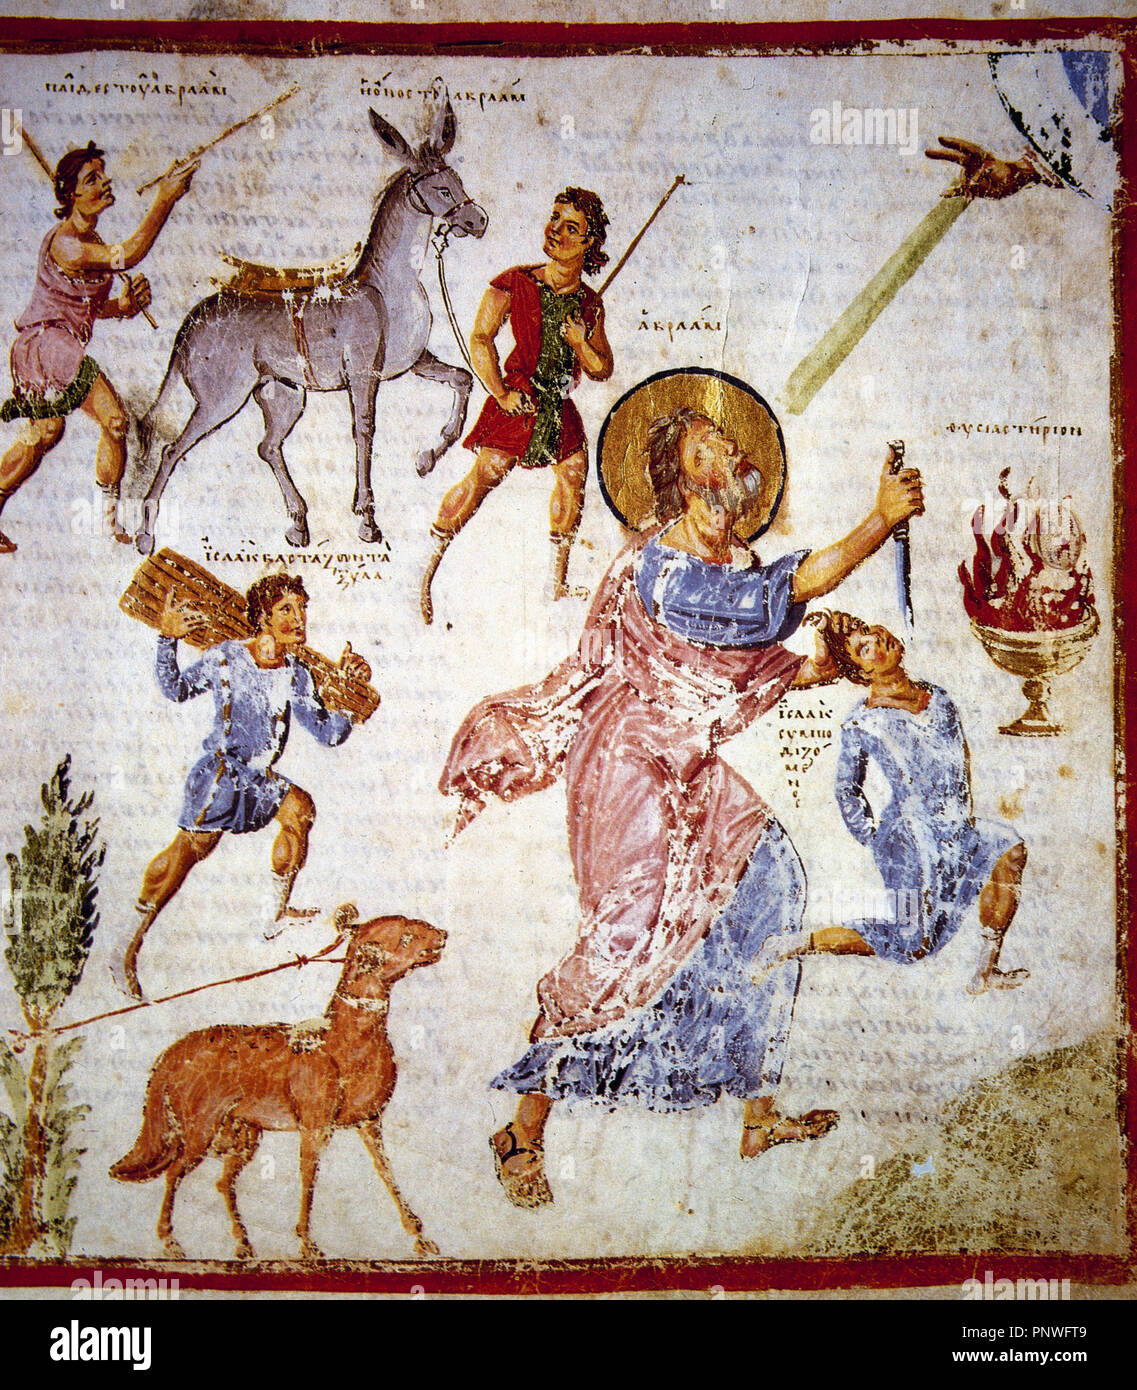 The Sacrifice of Isaac. Miniature of Christian Topography Constantinople by a Greek merchant named Cosmas Indicopleustes, 6th century. Folio. 59r. The Vatican Apostolic Library. - Stock Image